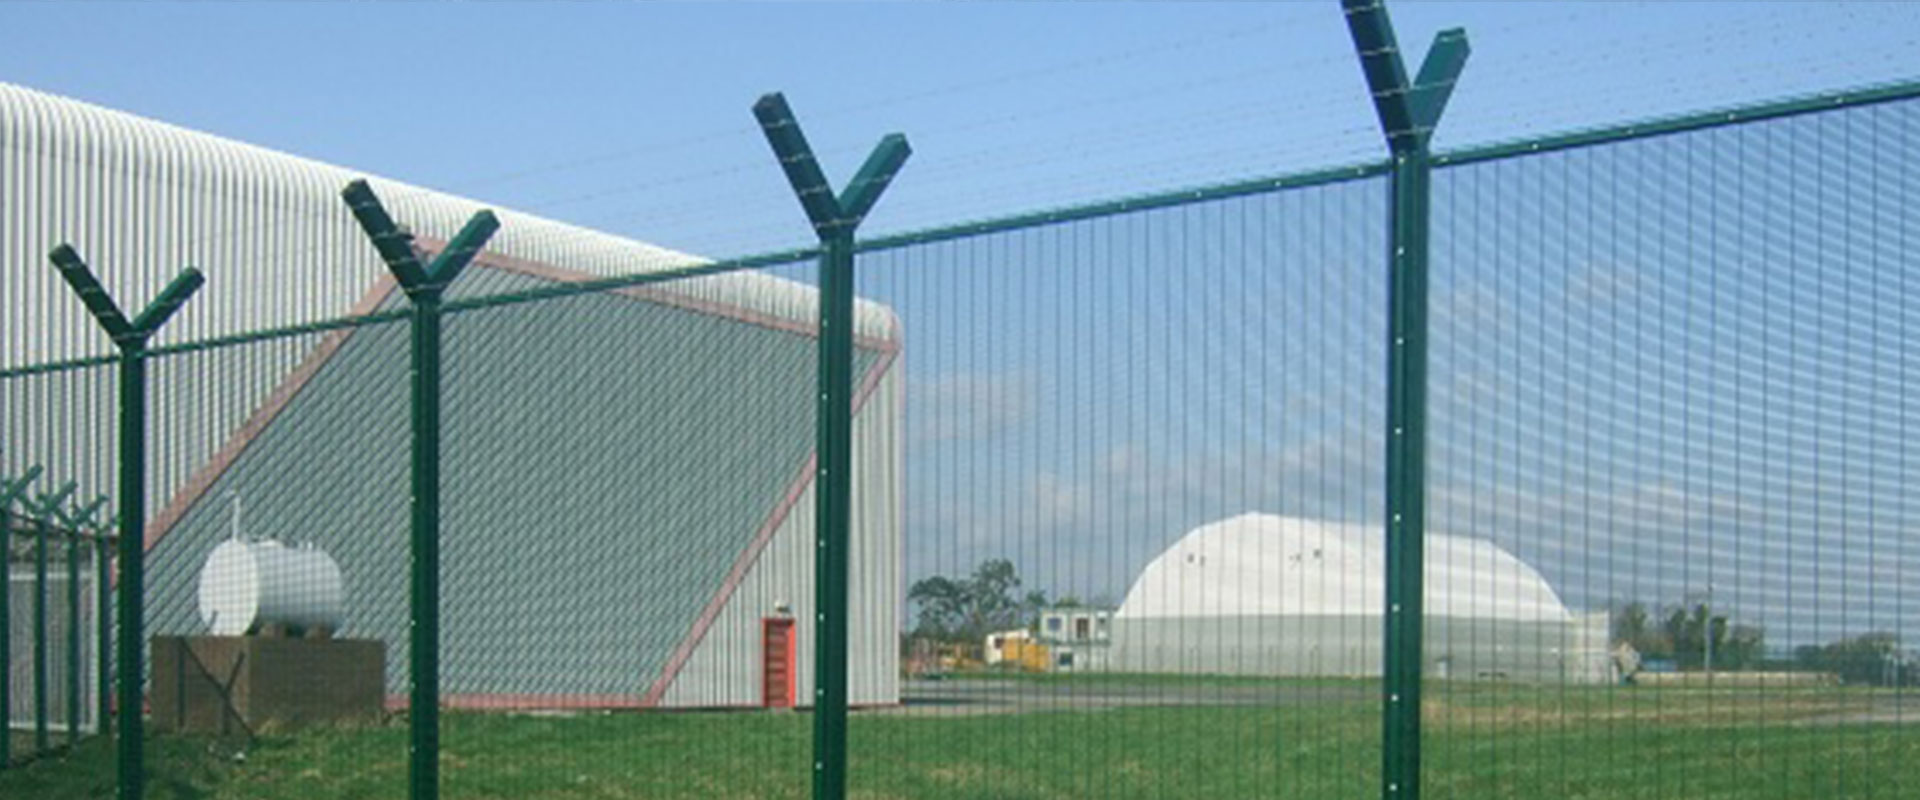 358 - Fencing product by Mulligan Fencing